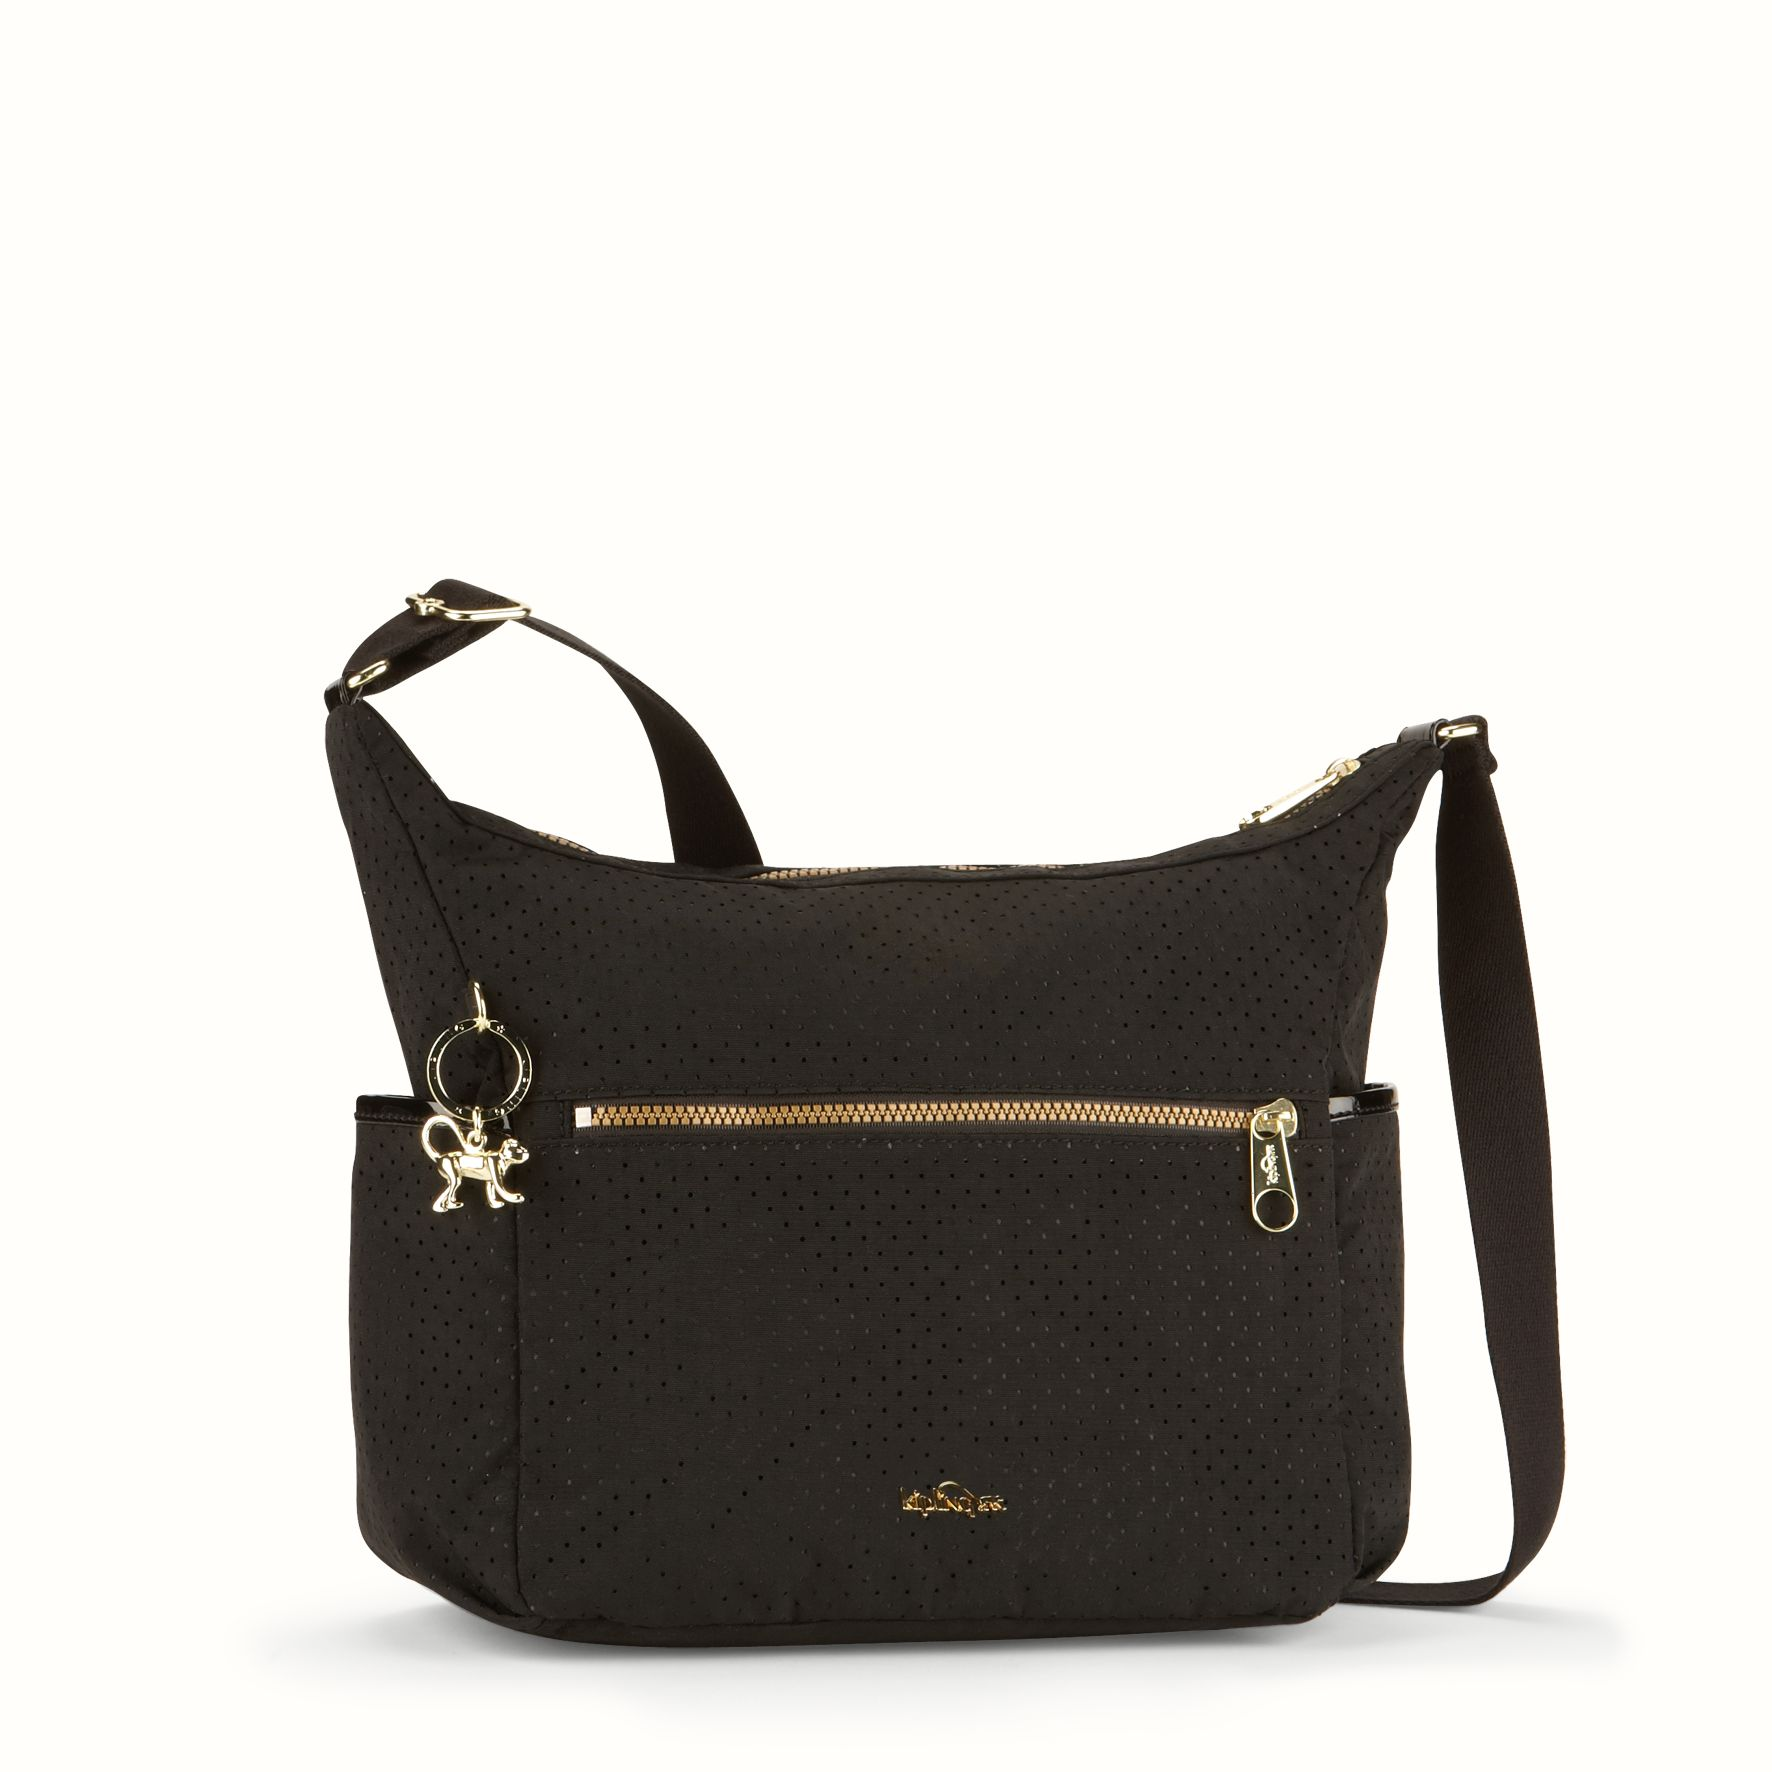 Roone medium shoulder bag